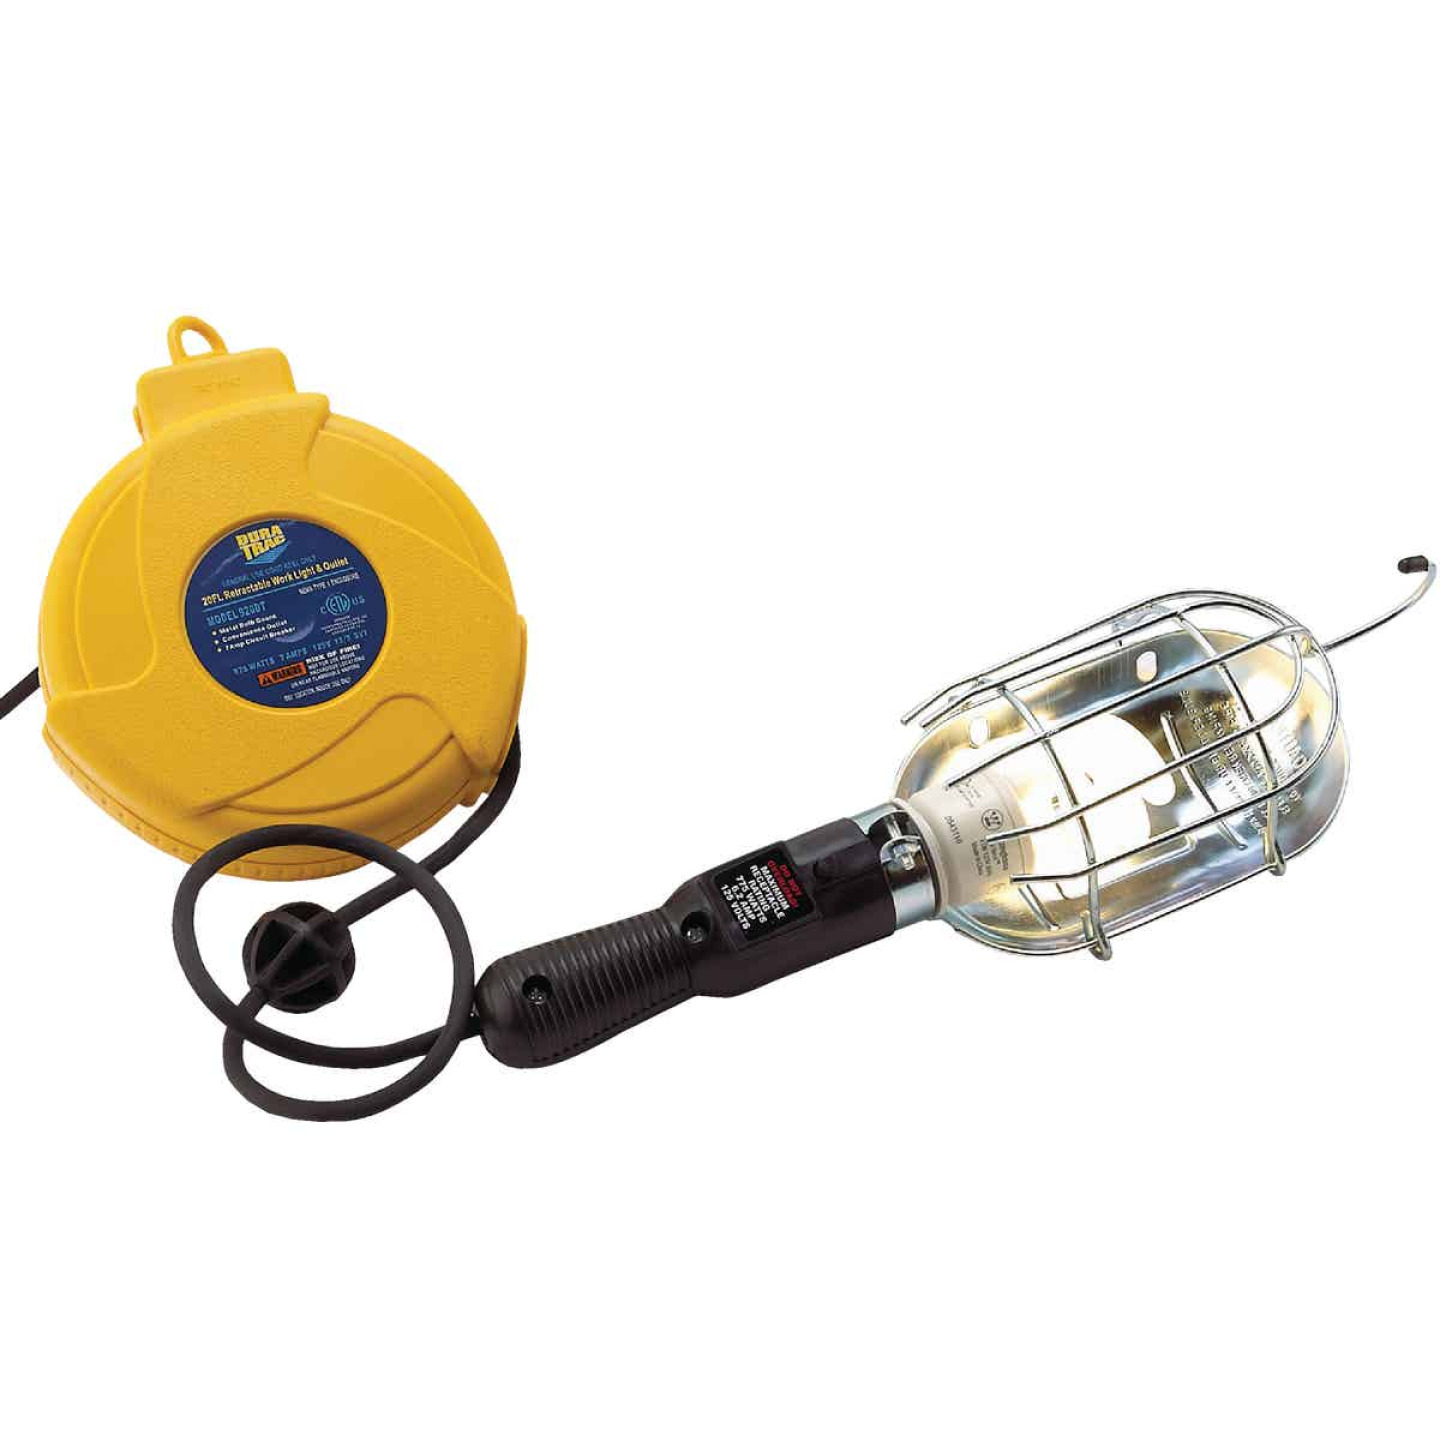 Alert Stamping 75W Incandescent Trouble Light with 20 Ft. Power Cord Image 5